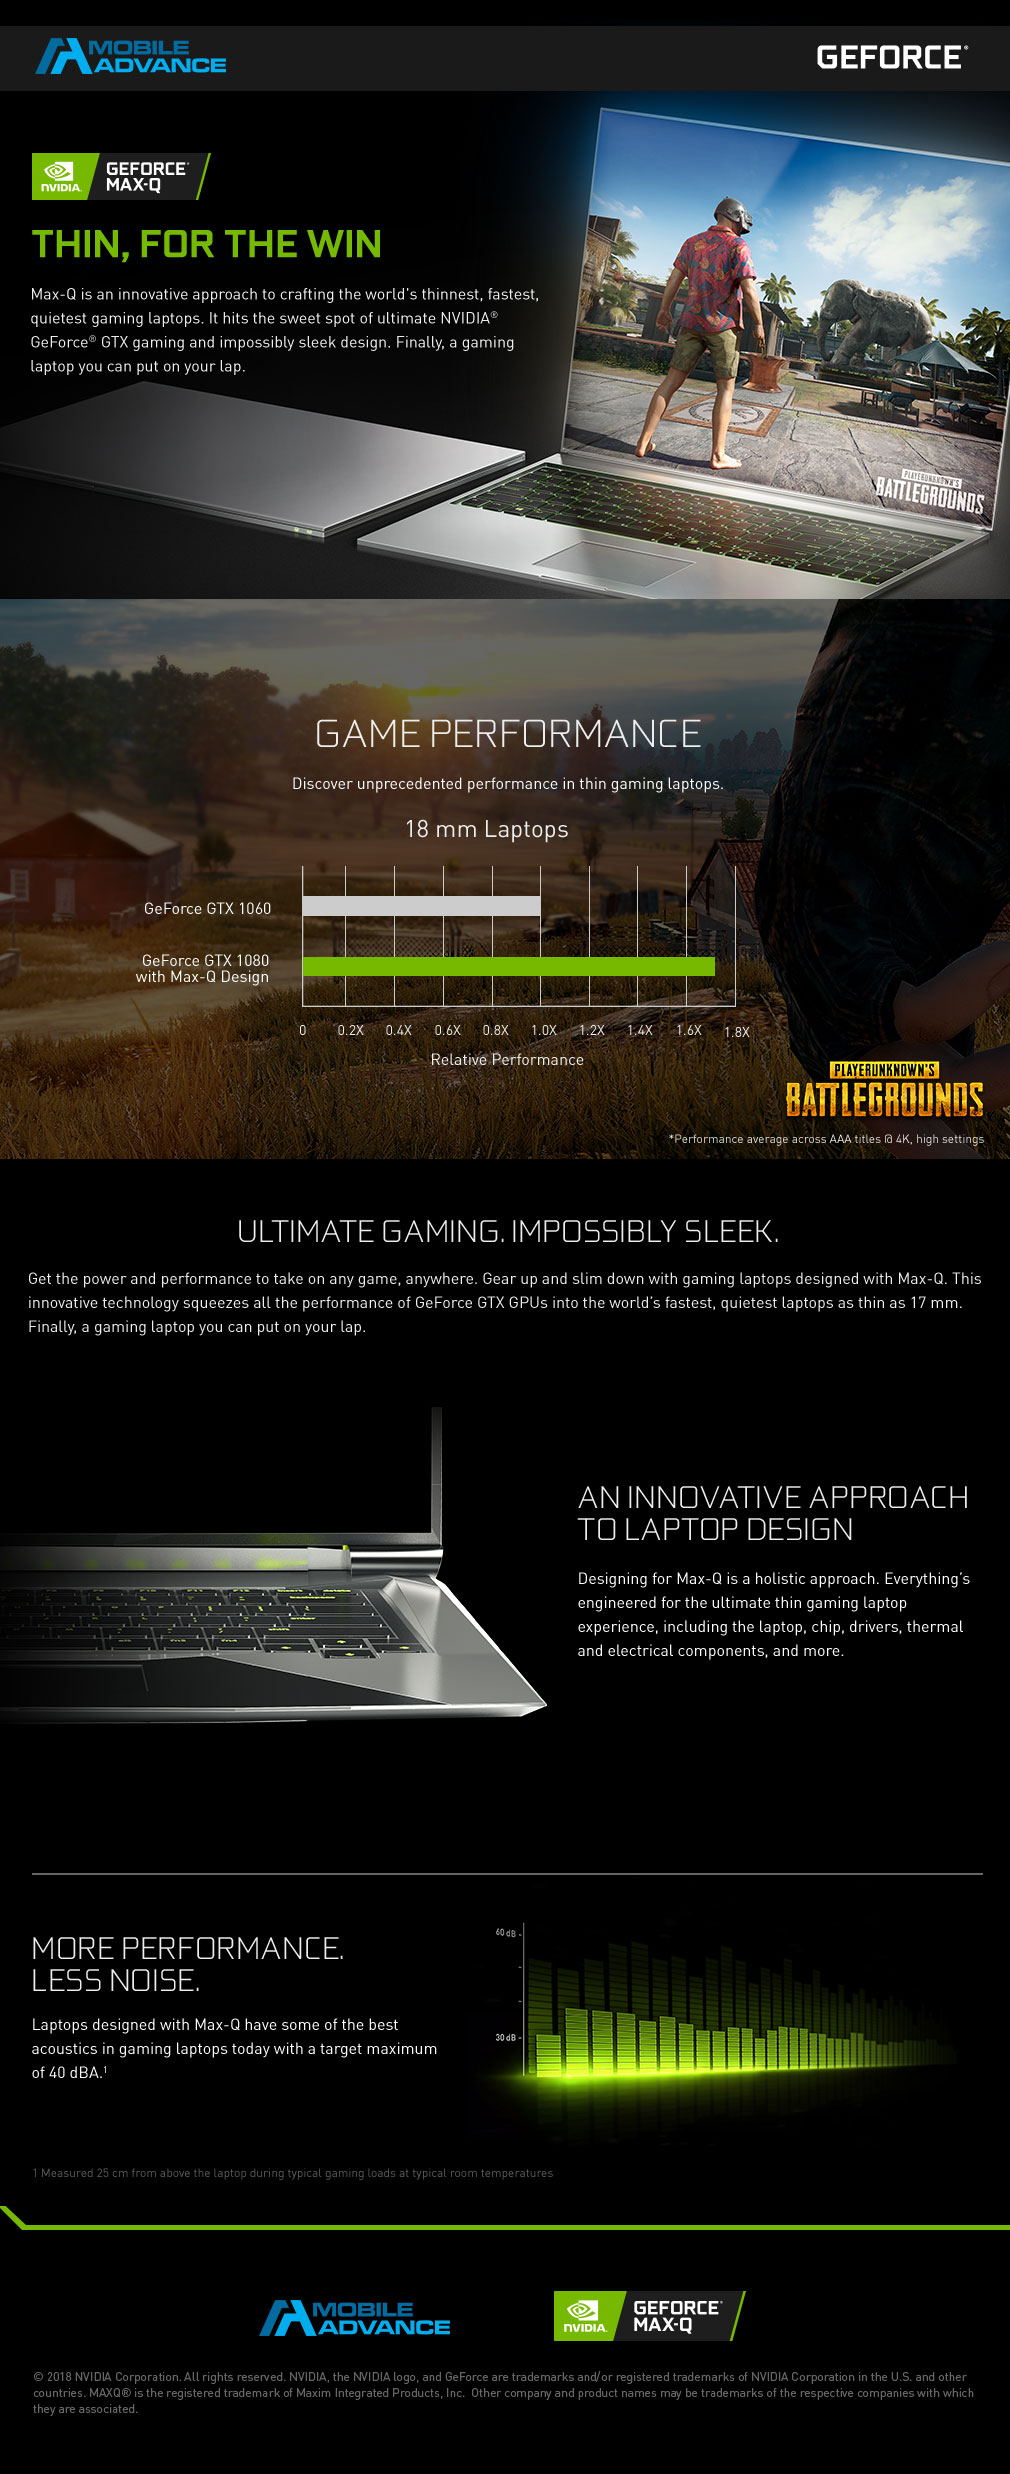 geforce-notebooks-max-q-partner-3.jpg